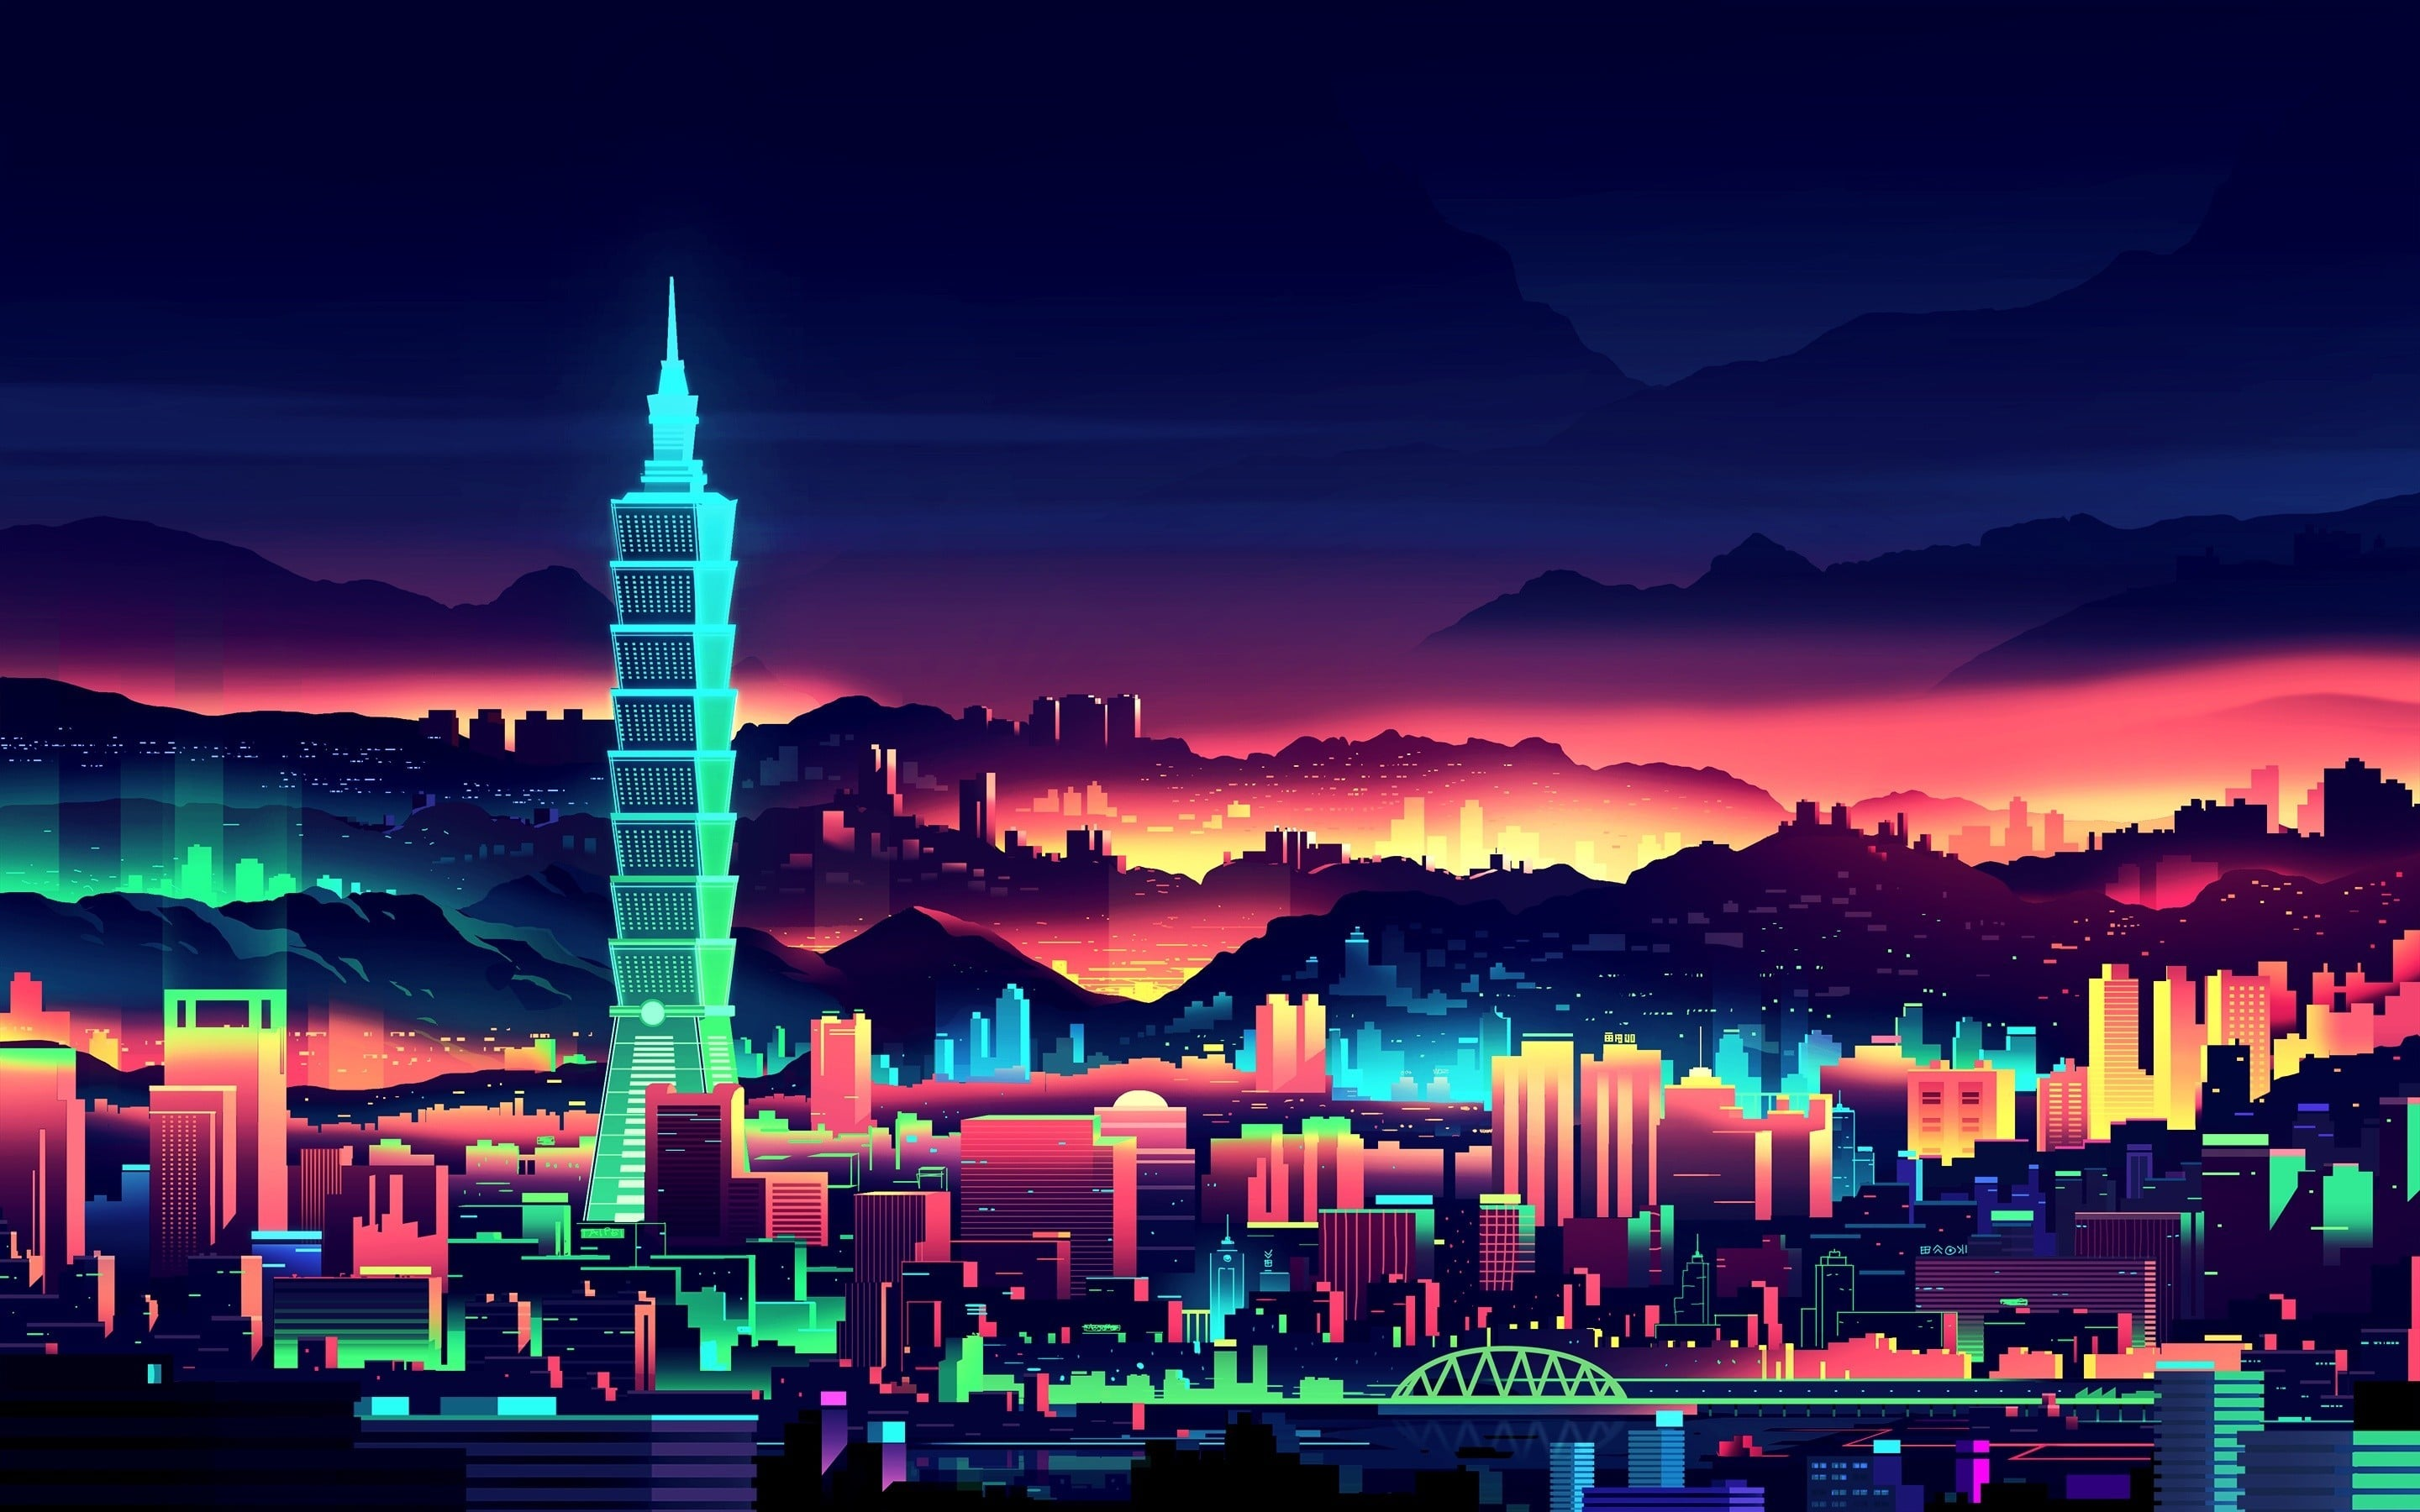 Vaporwave Hd Wallpapers Kolpaper Awesome Free Hd Wallpapers